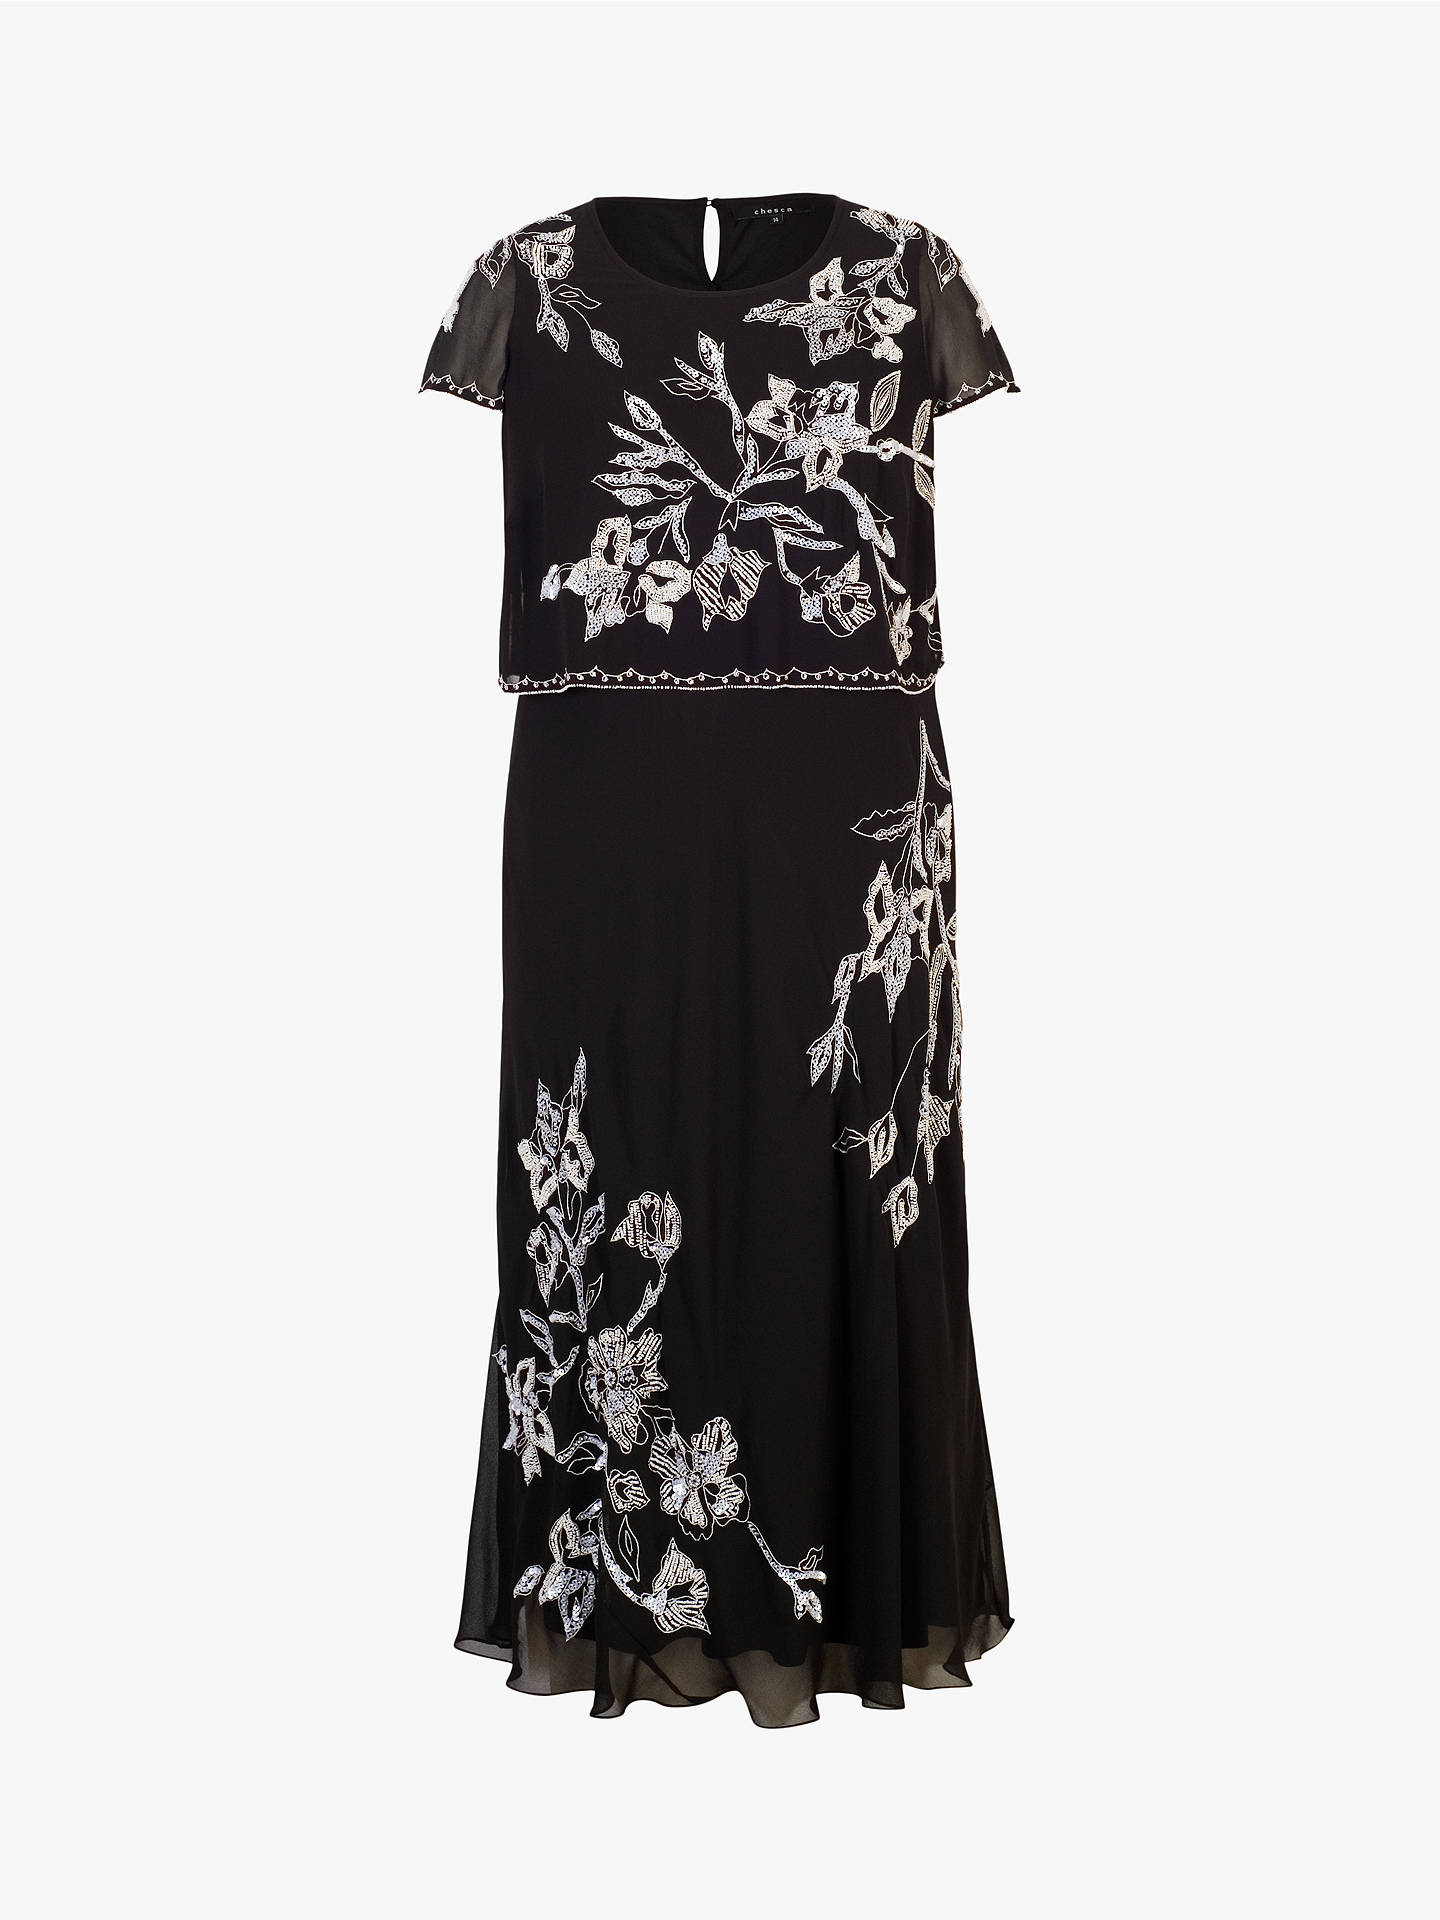 6aedad303486 ... Buy chesca Lily Bead/Embroidered Double Layered Chiffon Dress,  Black/Ivory, 14 ...